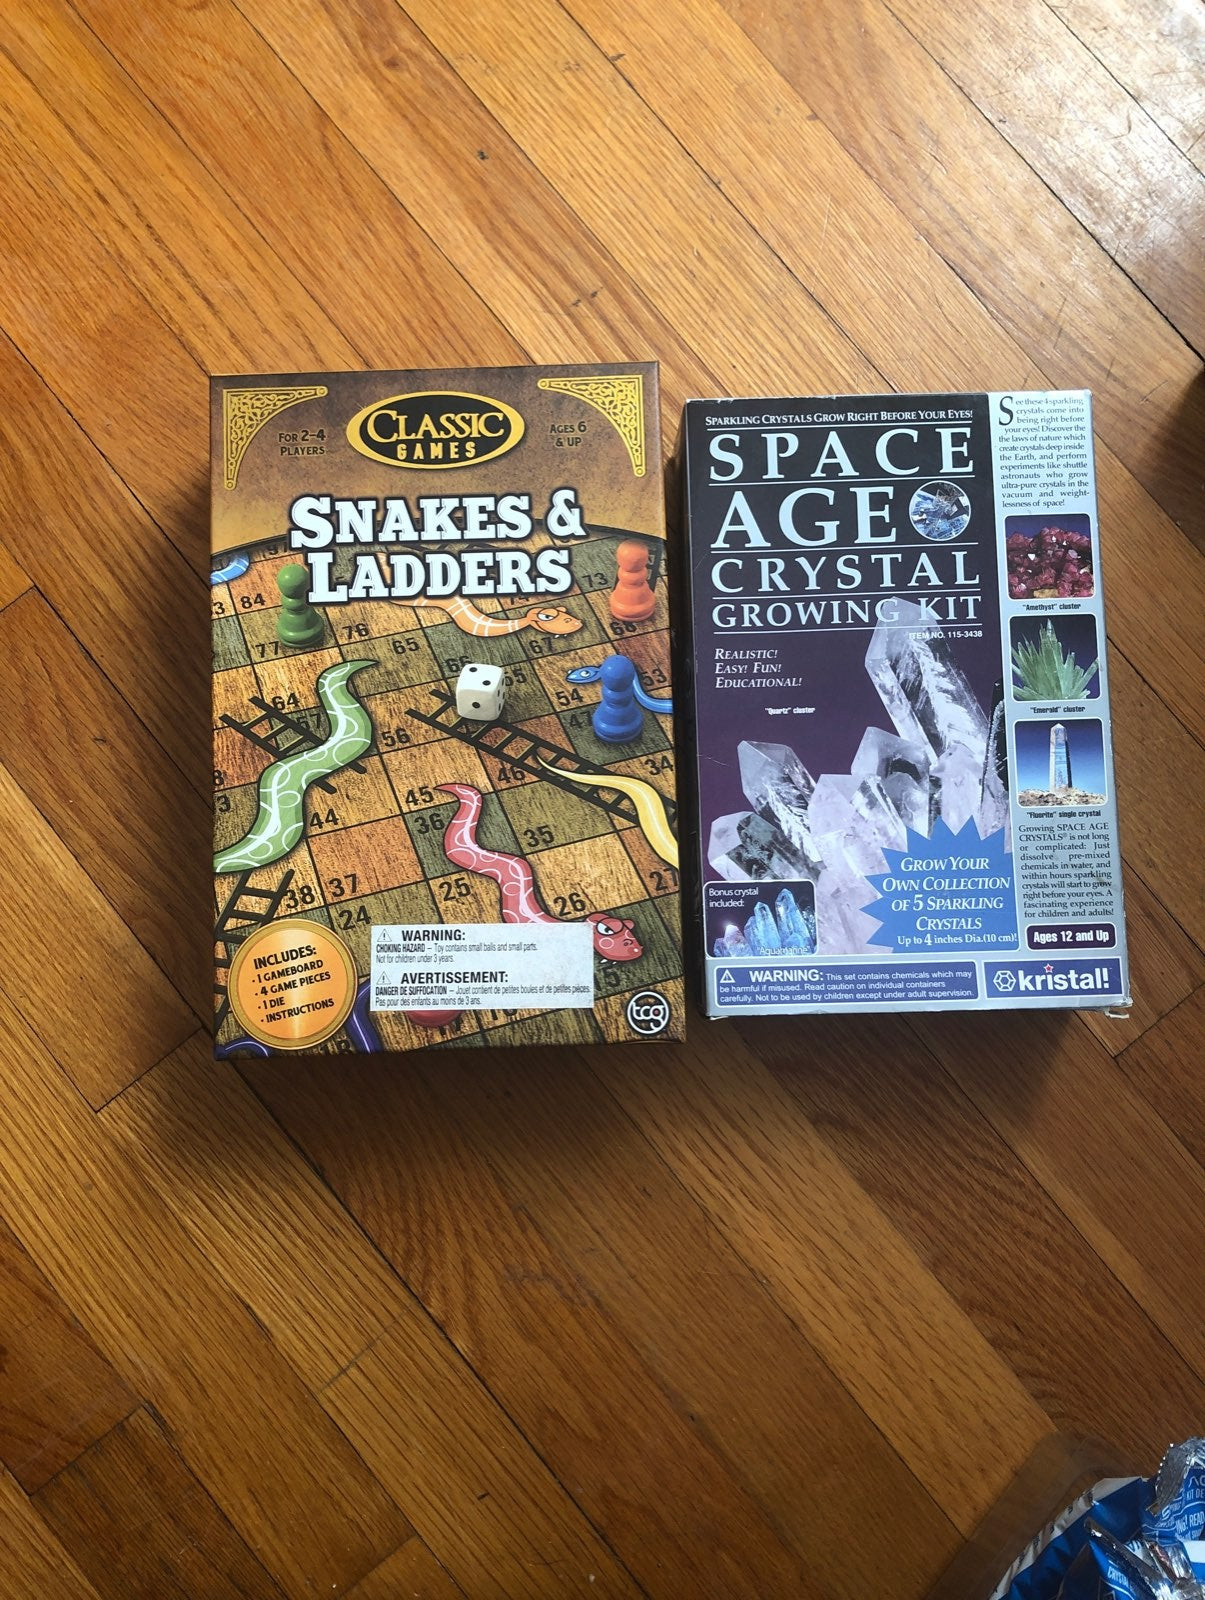 Snakes and ladders and Crystal growing k